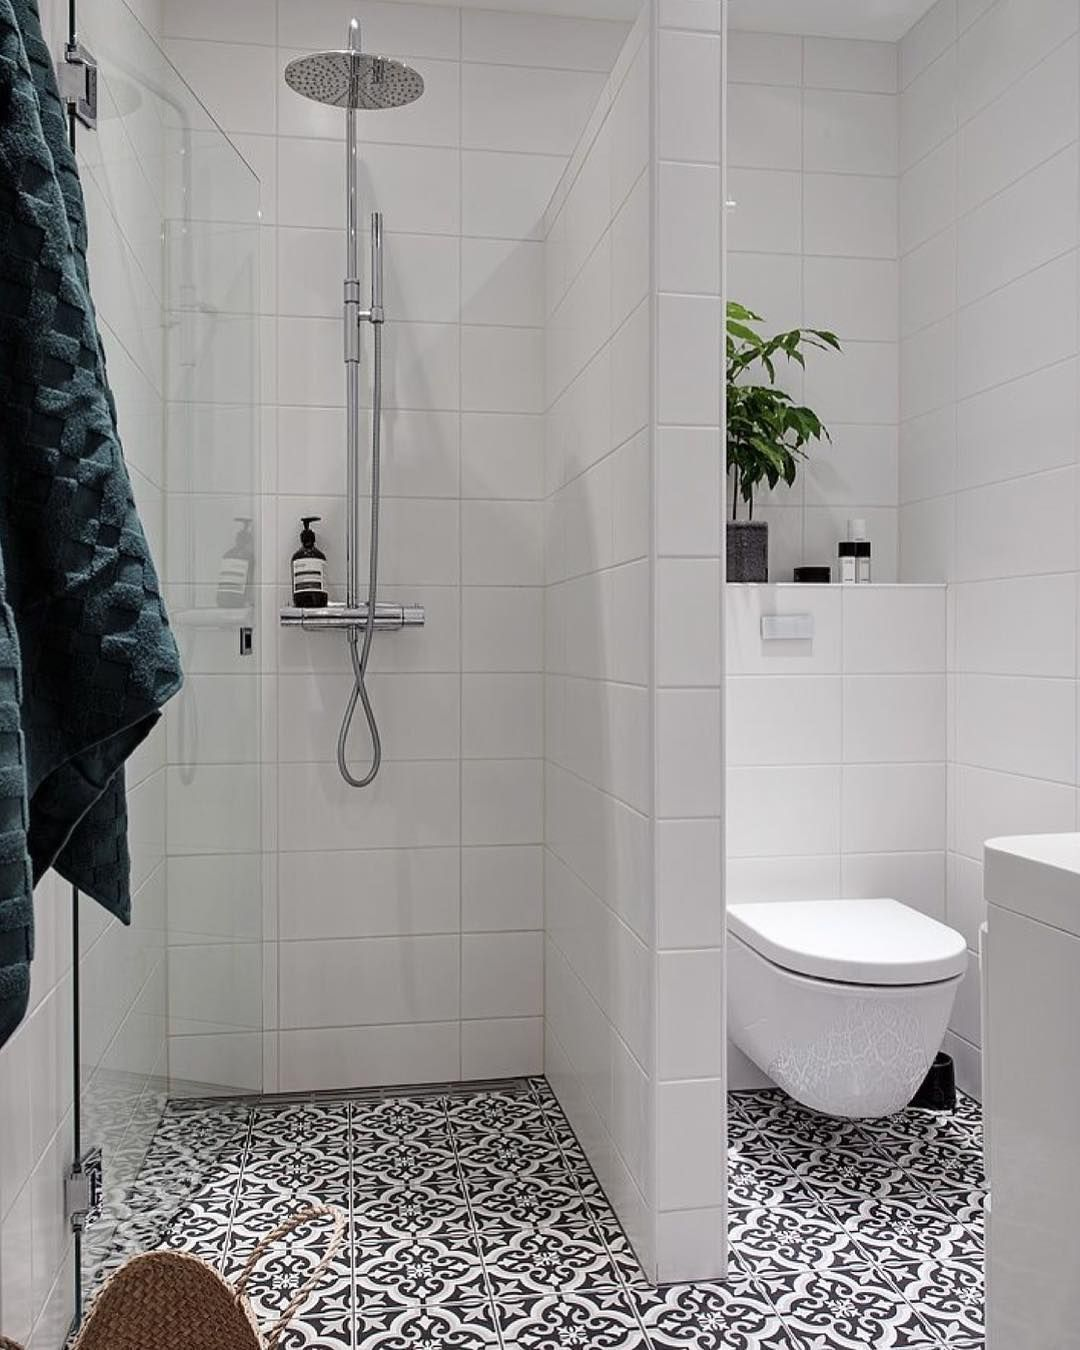 Douche A L Italienne 32 Modeles Reperes Sur Pinterest Small Bathroom Makeover Small Bathroom Small Bathroom Layout Small bathroom design plans